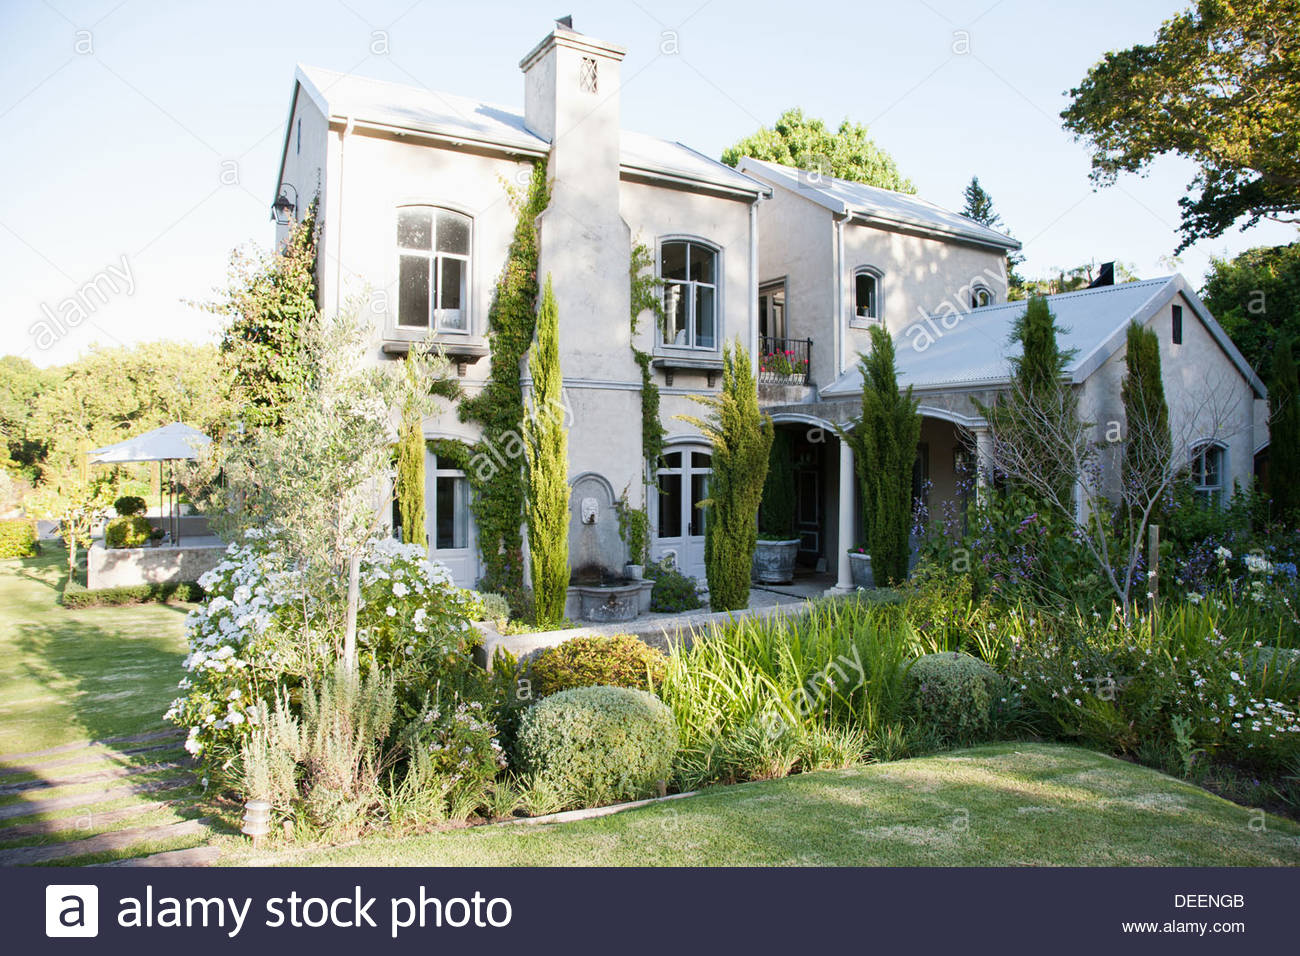 Maison et jardin Photo Stock